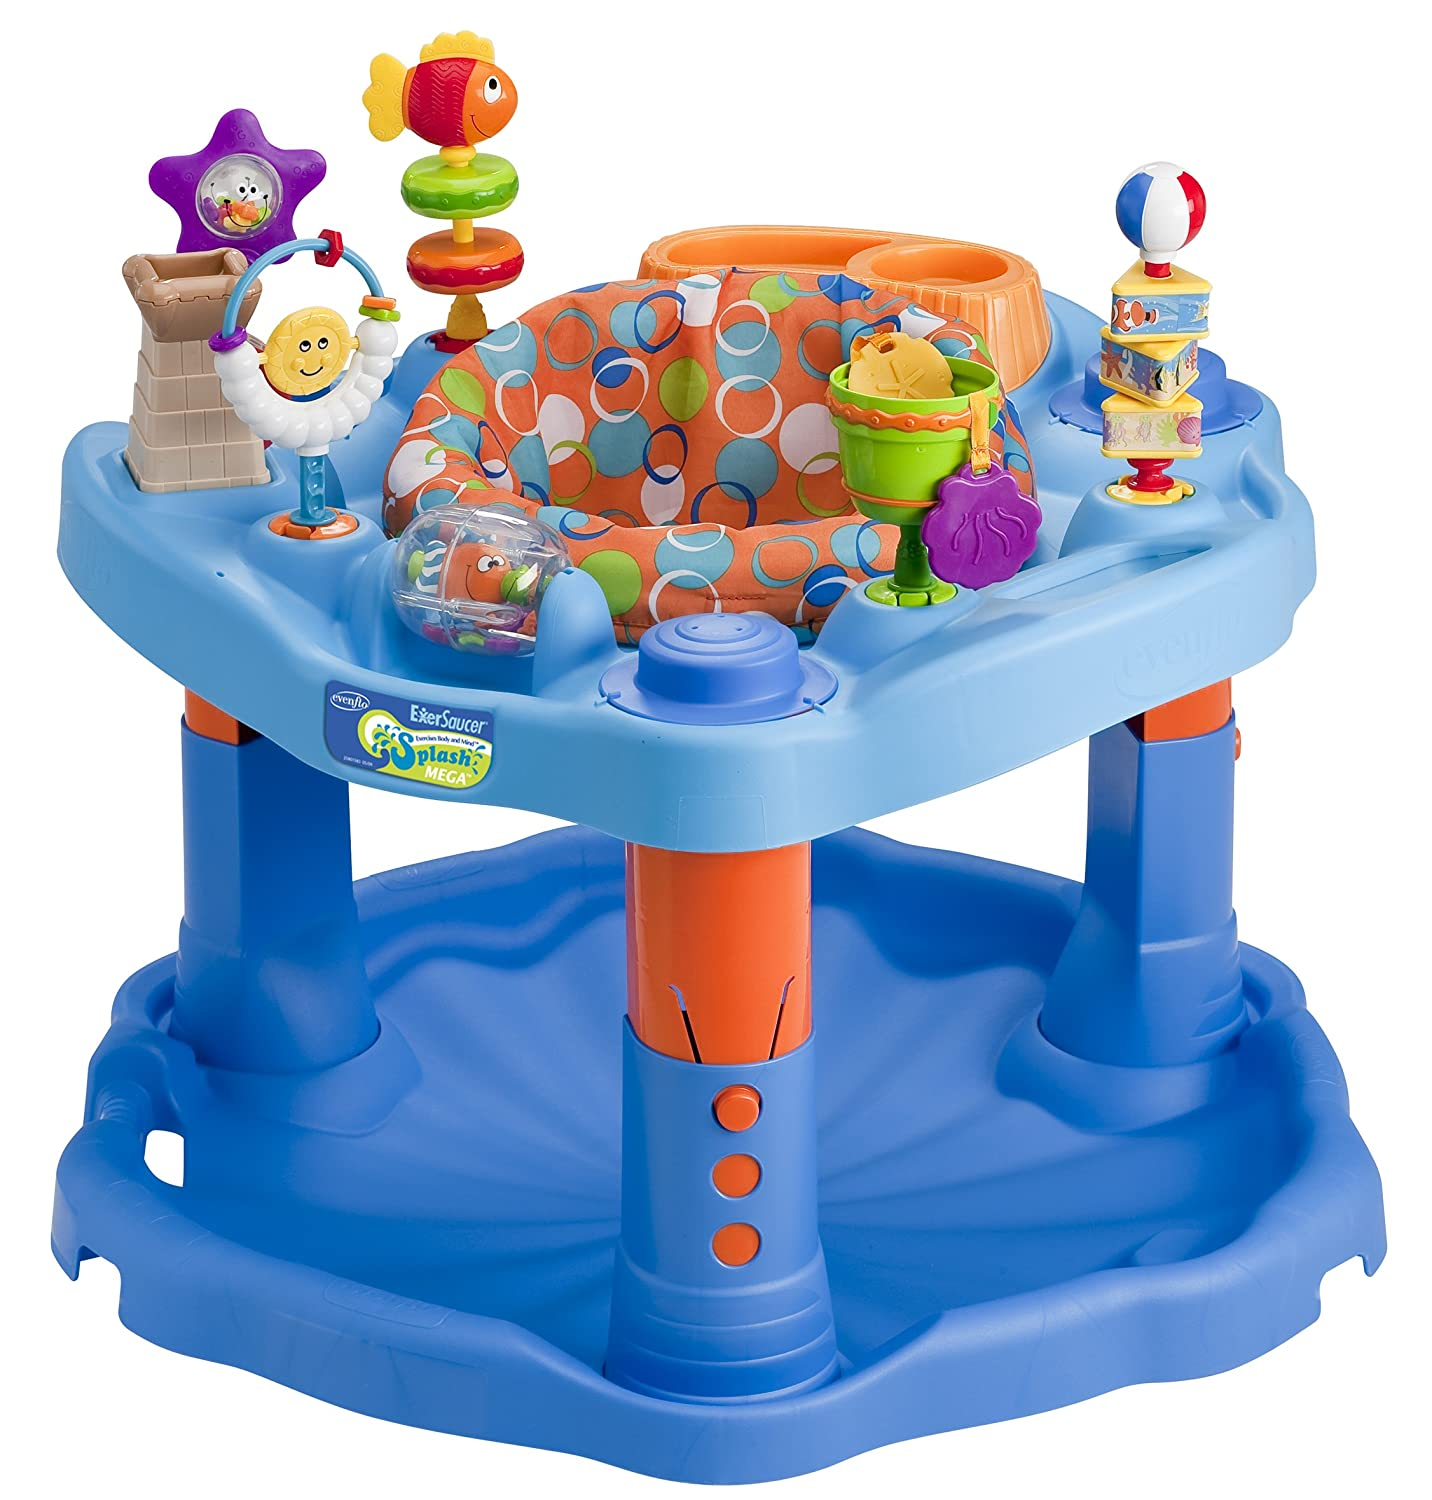 Amazon.com : Evenflo Splash Mega Exersaucer (Discontinued by Manufacturer) : Stationary Stand Up Baby Activity Centers : Baby